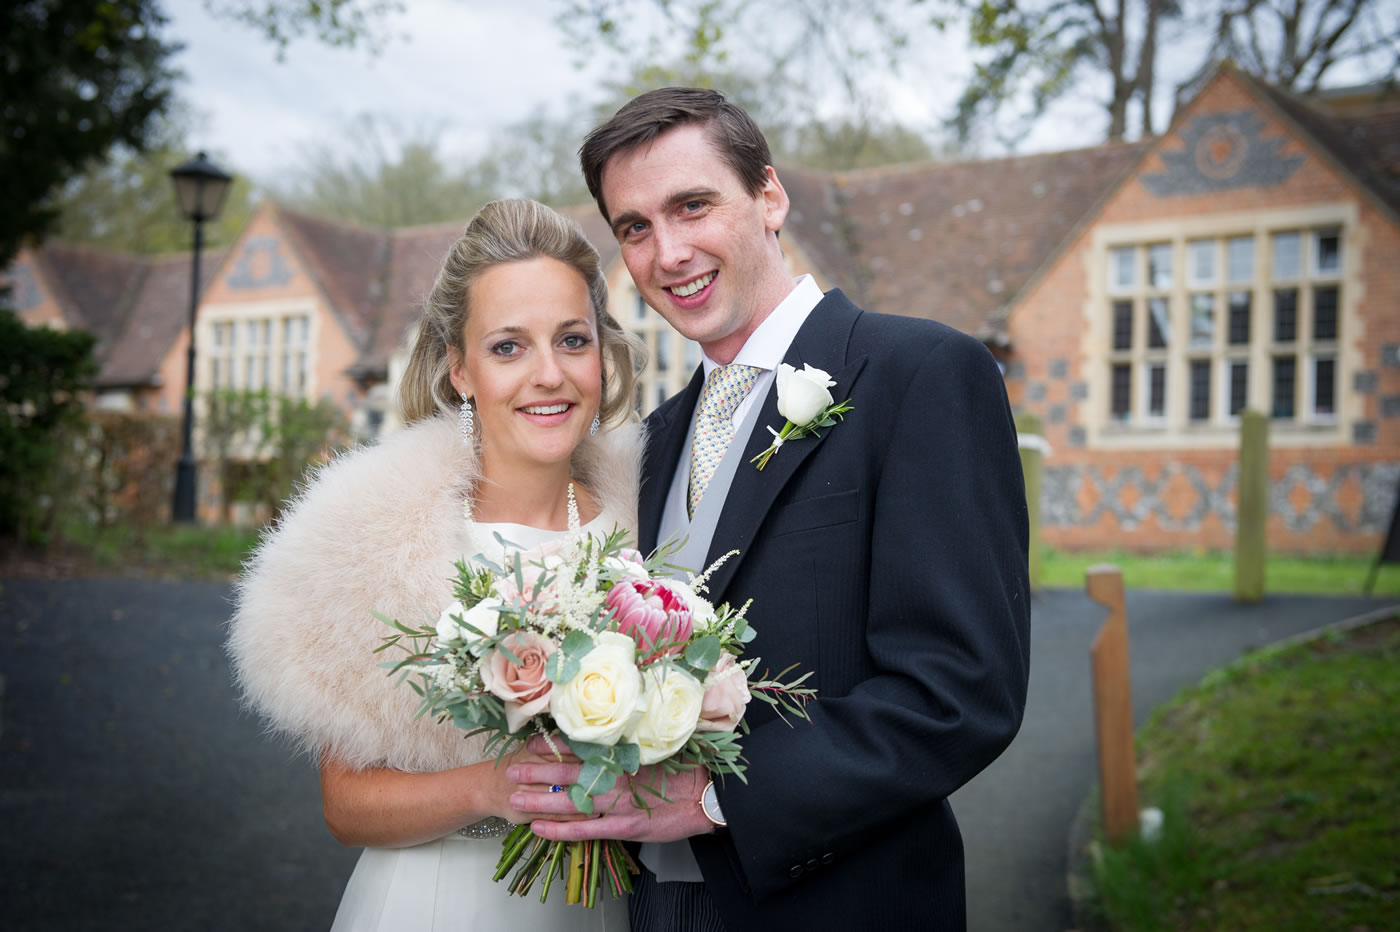 Weddings at Bradfield College Berkshire - Bride & Groom - Bridal Hair & Makeup